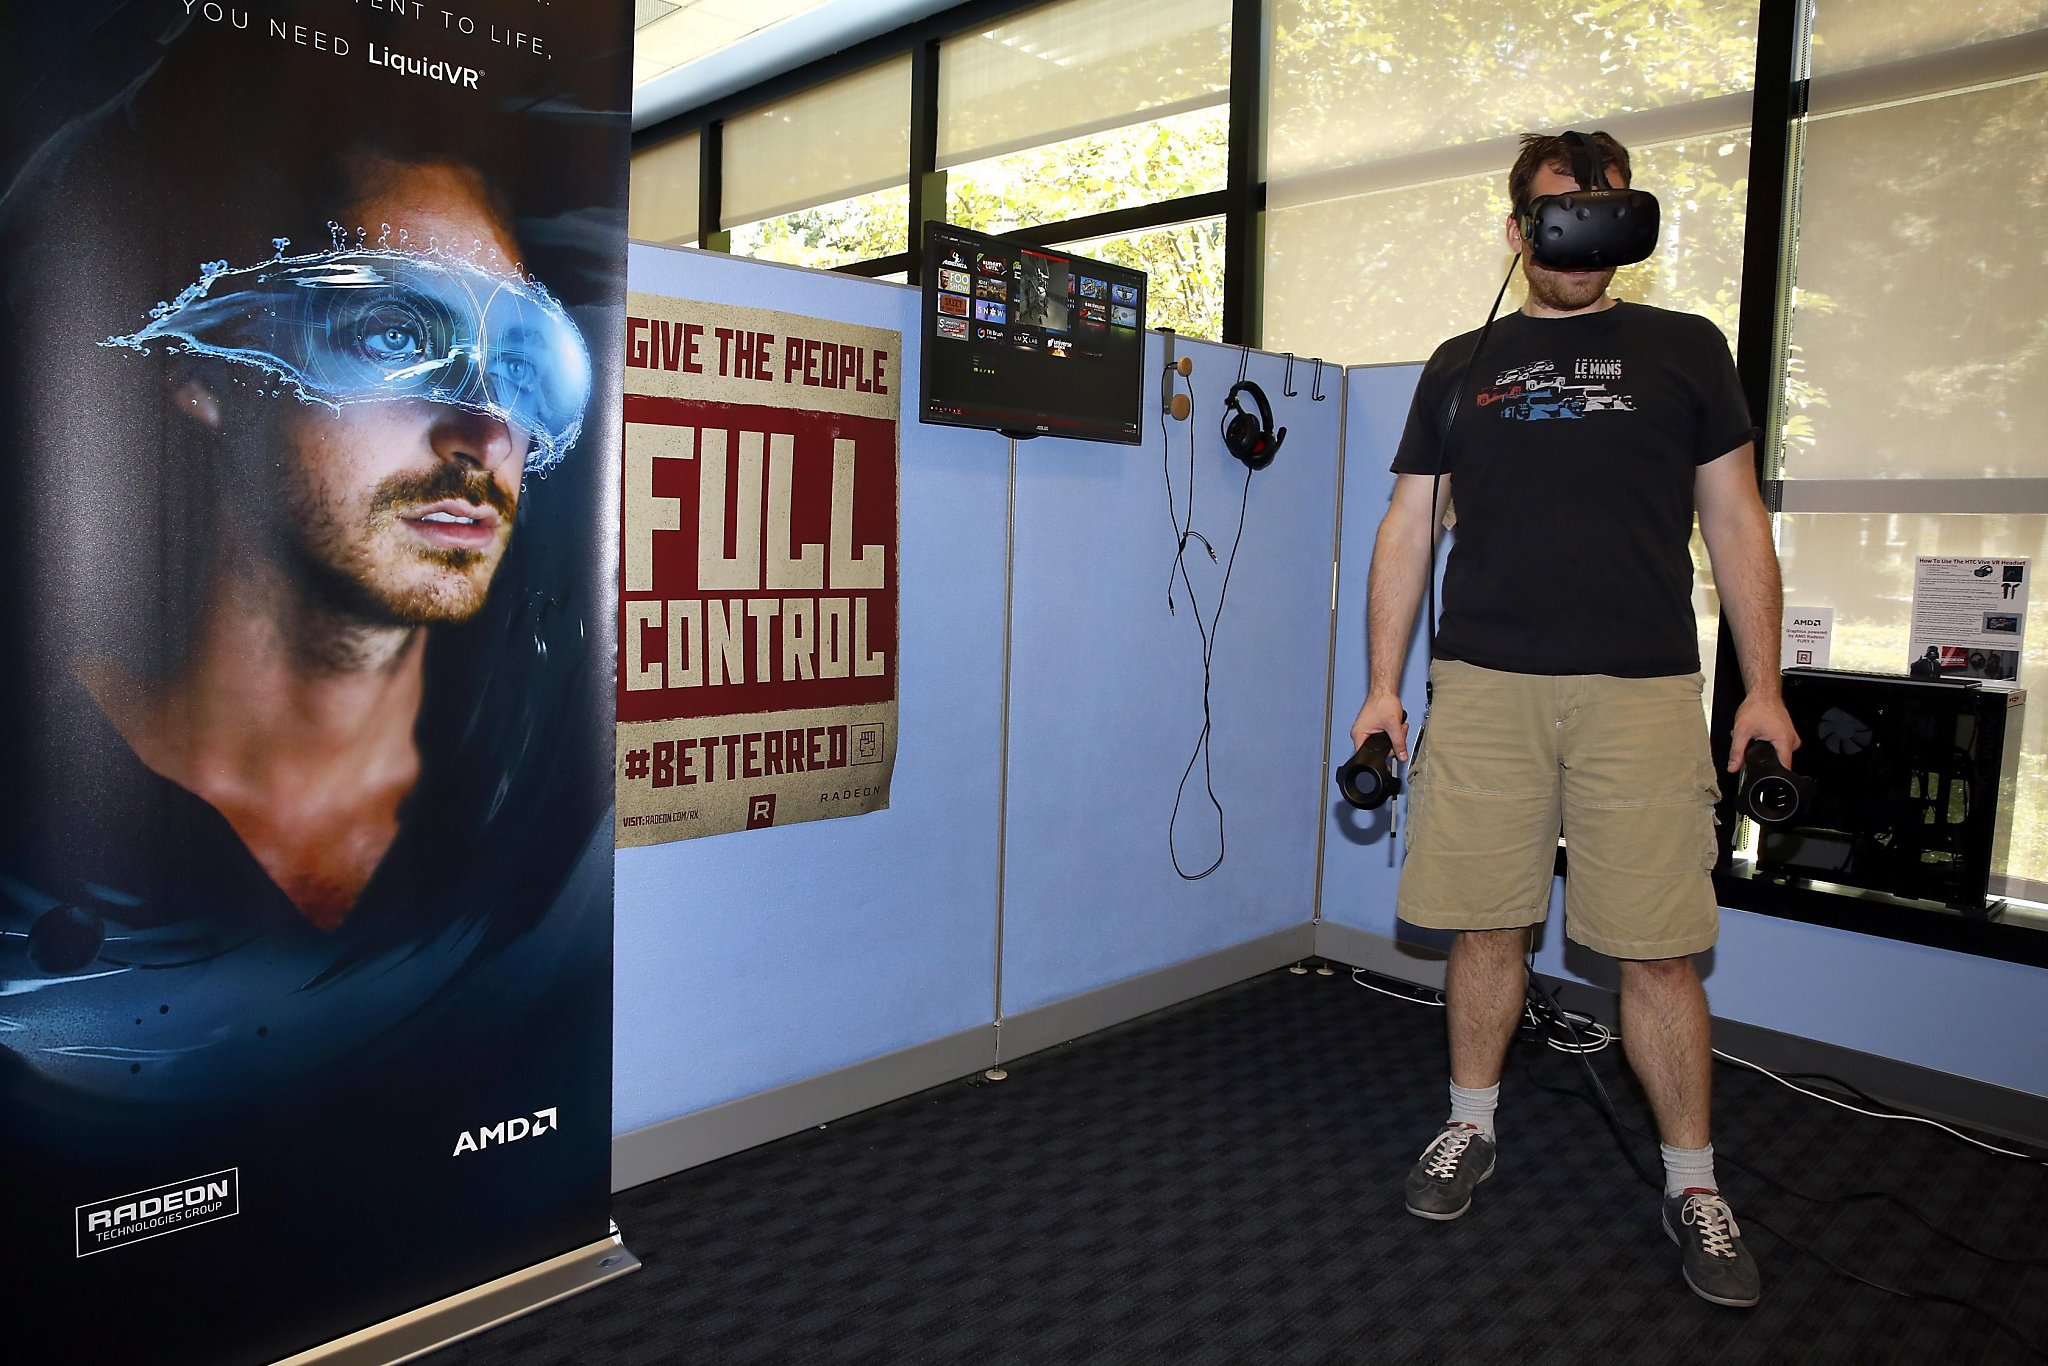 Amd Hopes To Redeem Itself With Focus On Virtual Reality Sfchronicle Com